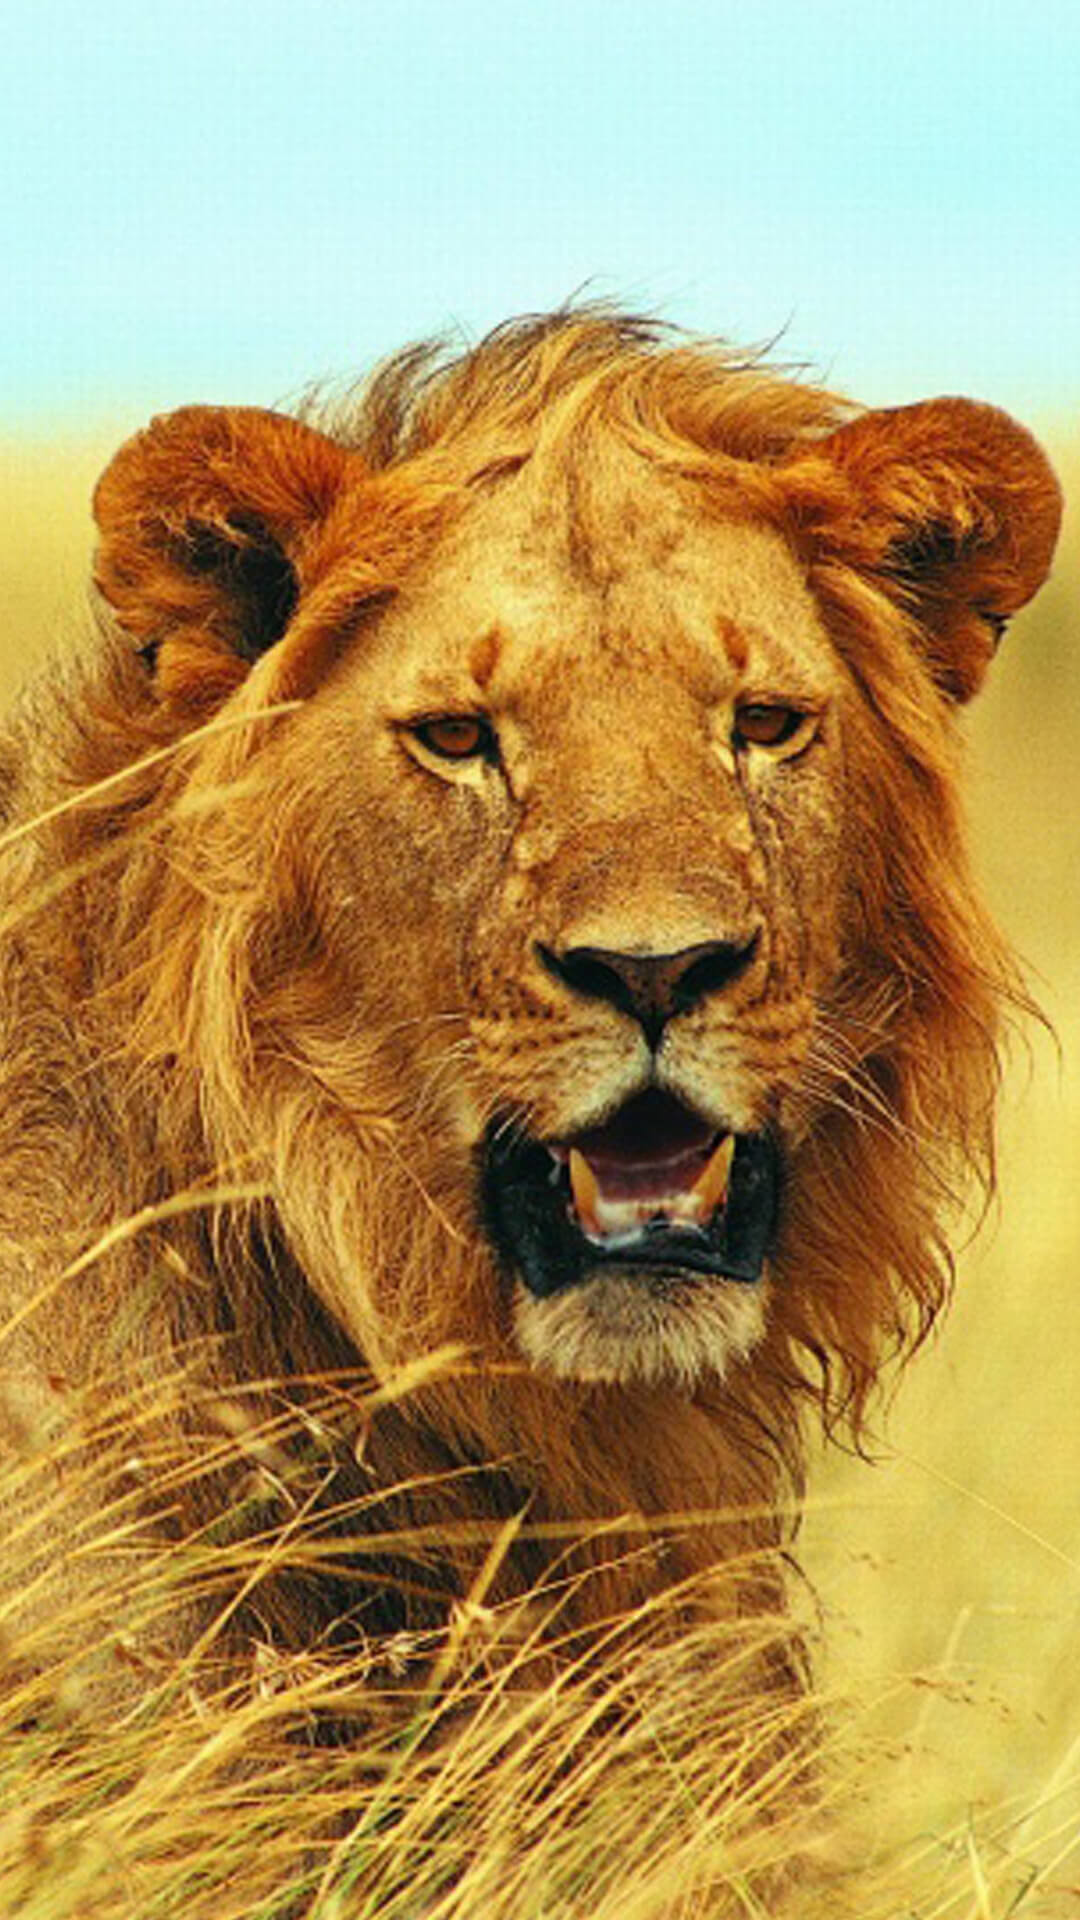 How to download HD Mighty Lion iPhone Wallpaper:-